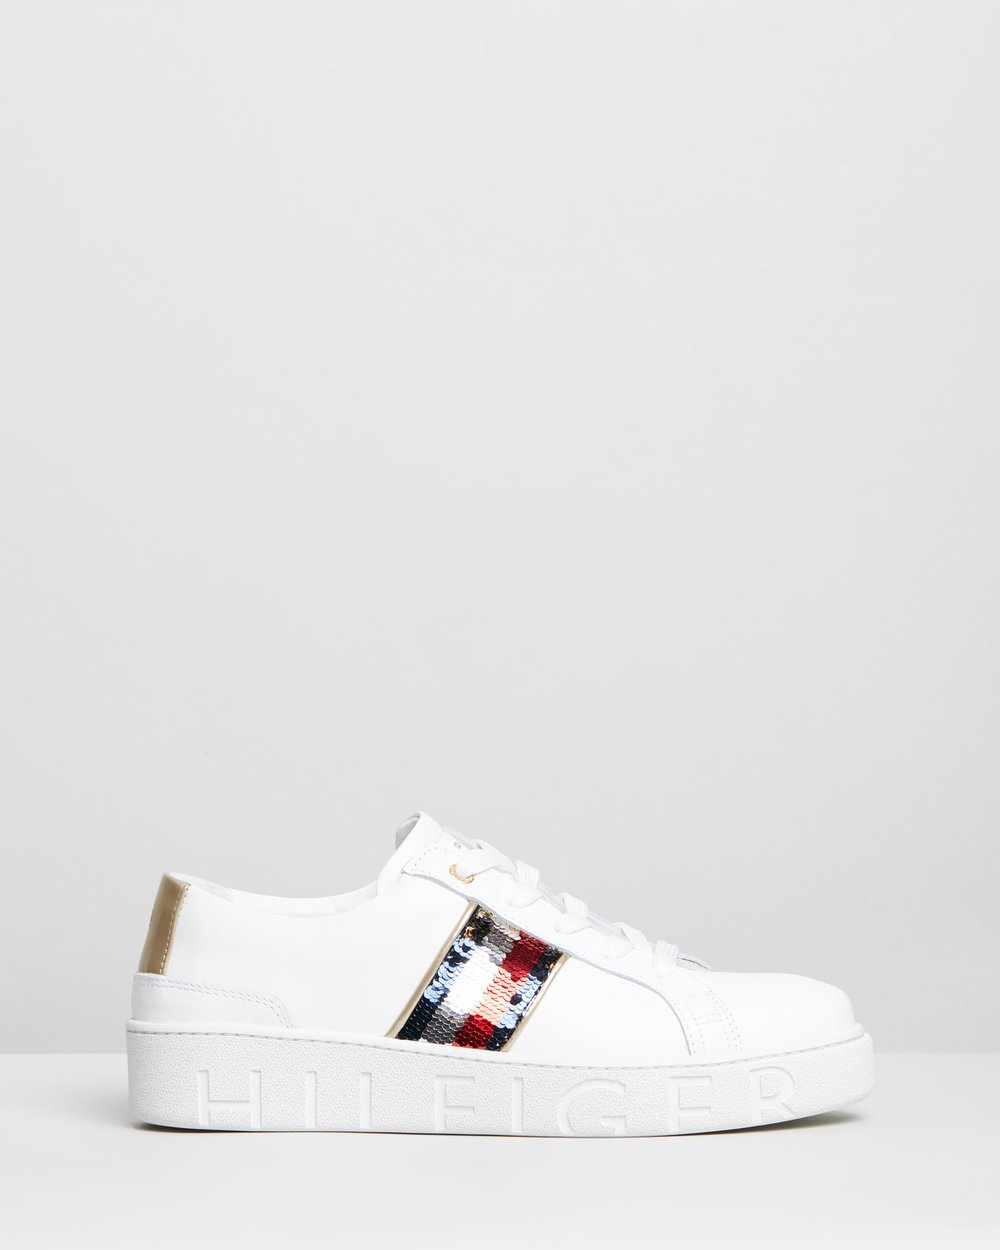 80deab461 Sequins Fashion Sneakers - Women s by Tommy Hilfiger Online